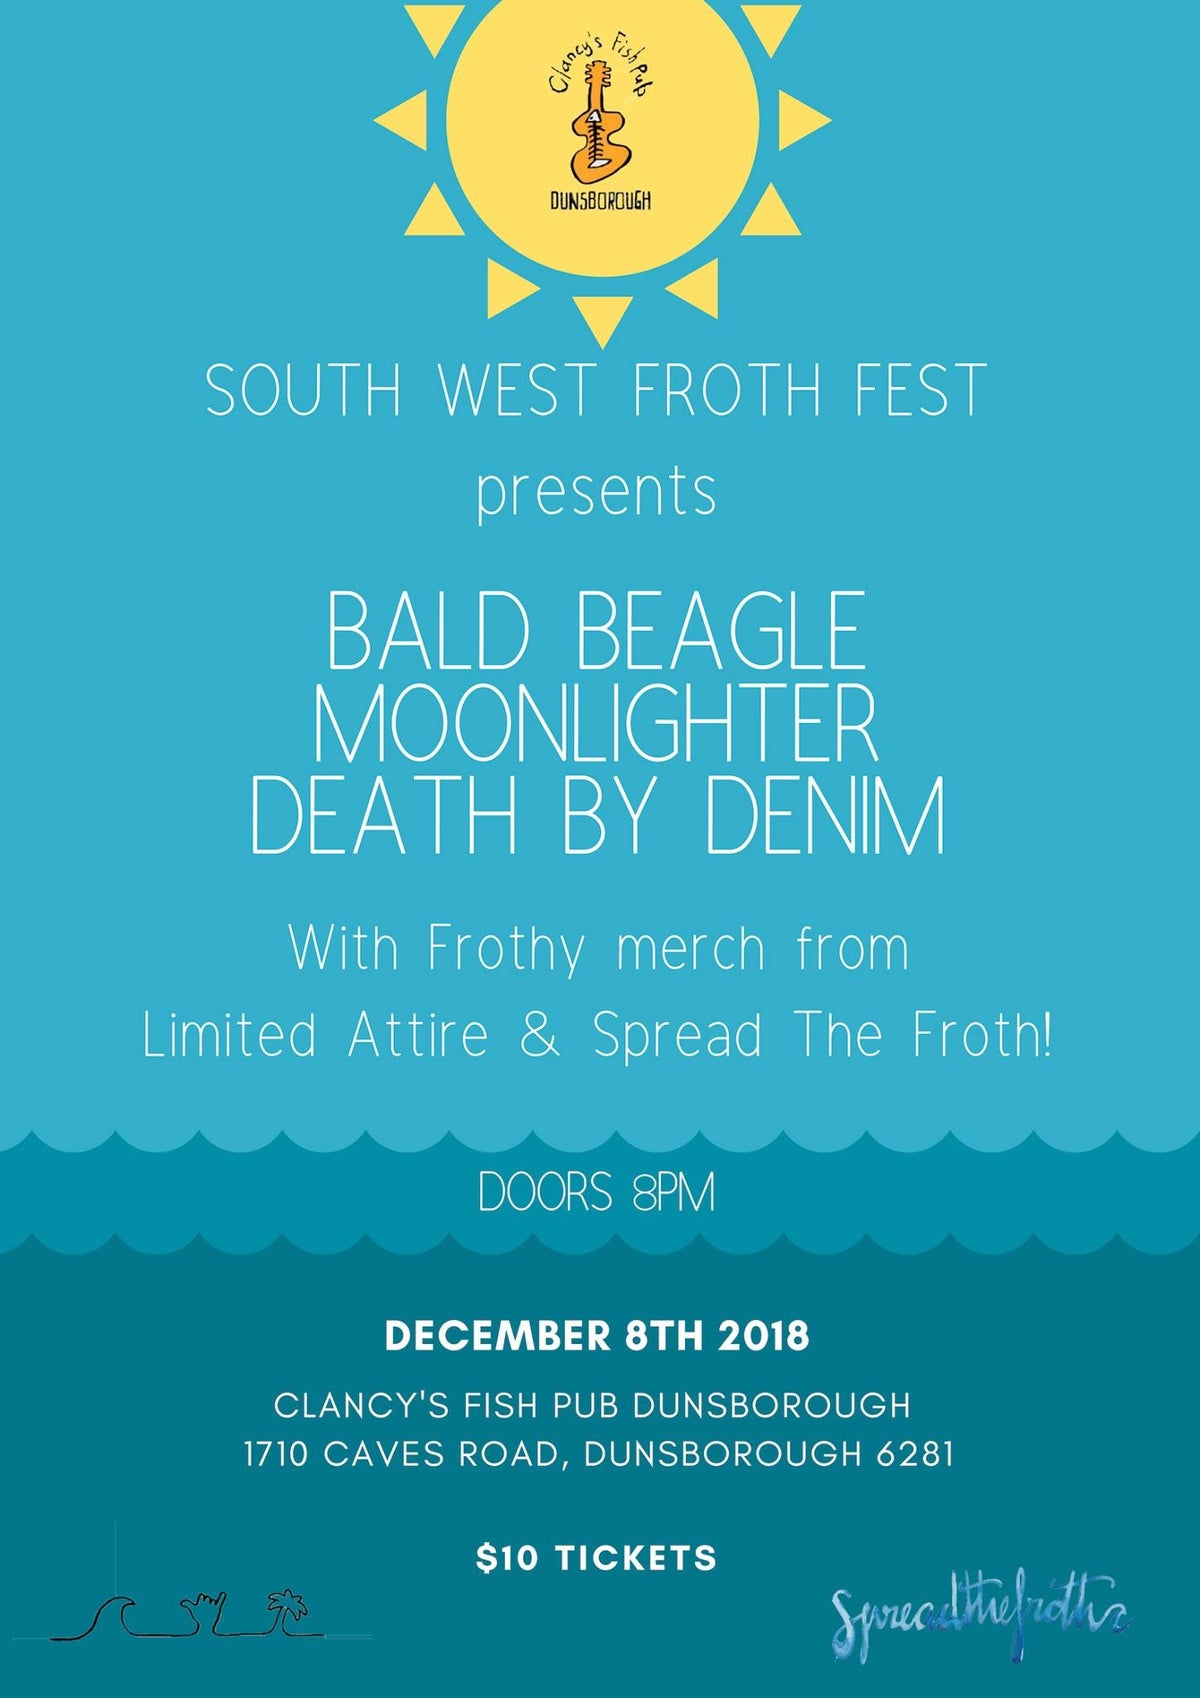 South West Froth Fest